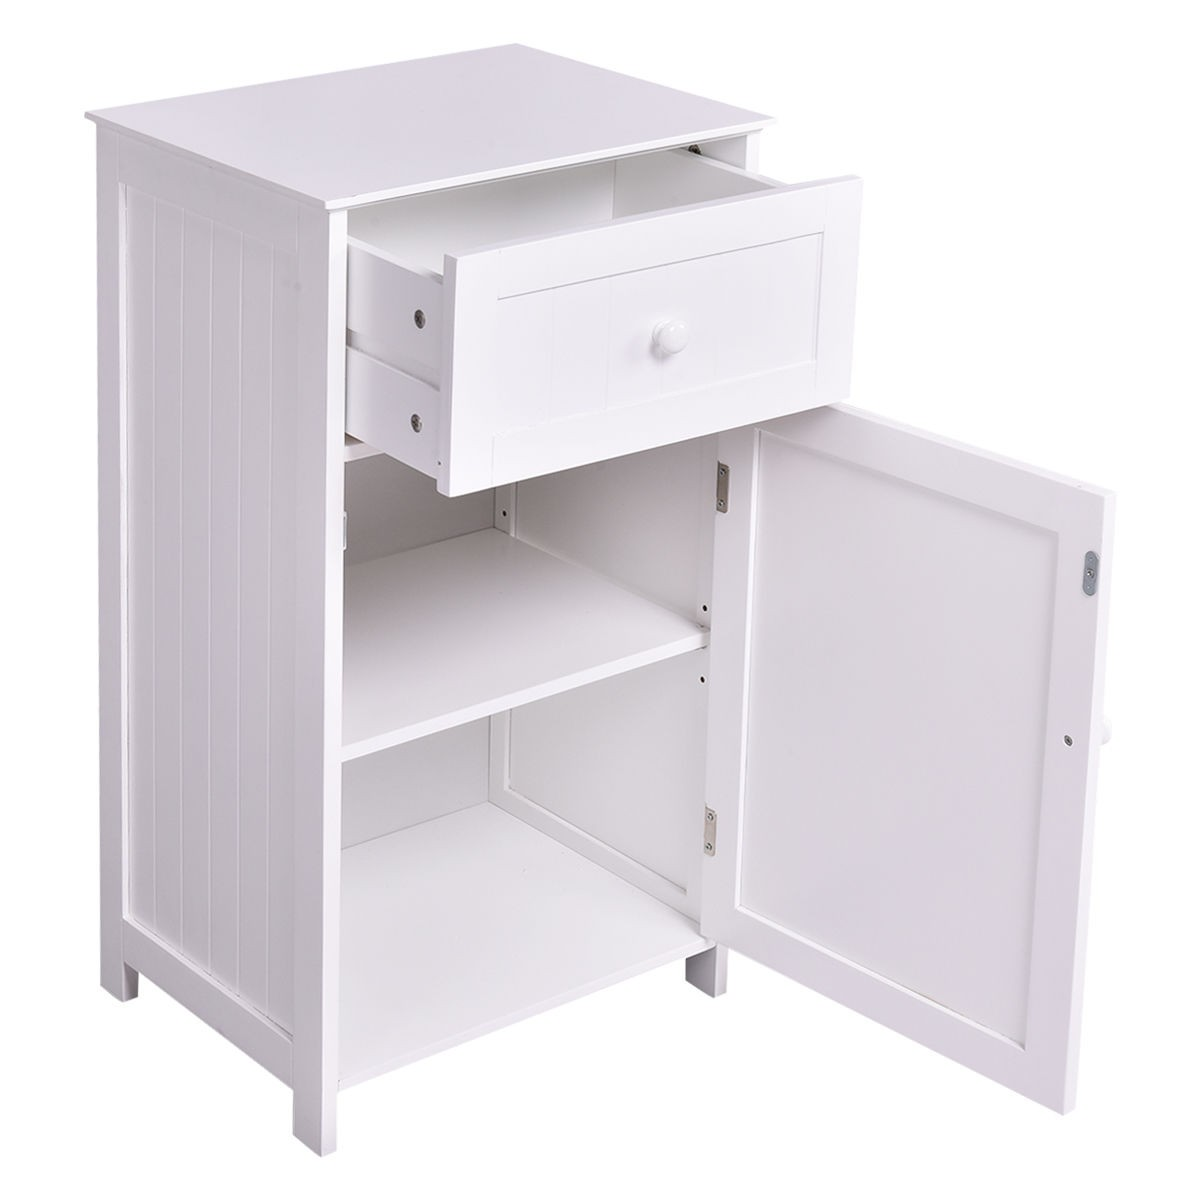 white bathroom floor storage cabinet kitchen bathroom storage cabinet floor stand white wood 24619